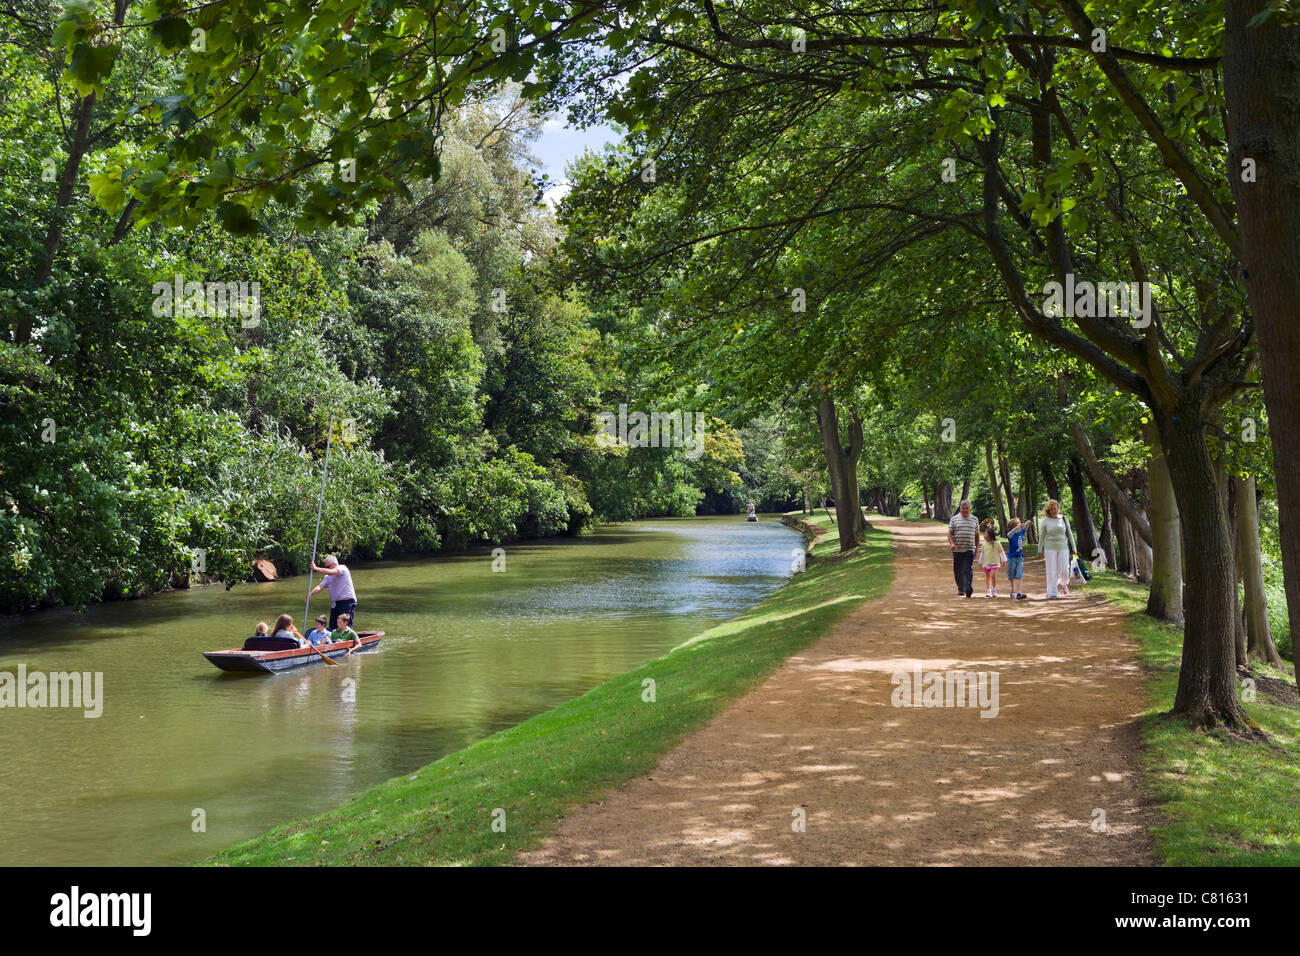 Barque sur la rivière Cherwell et marcher le long de ses rives près de Christ Church Meadow, Oxford, Oxfordshire, Photo Stock